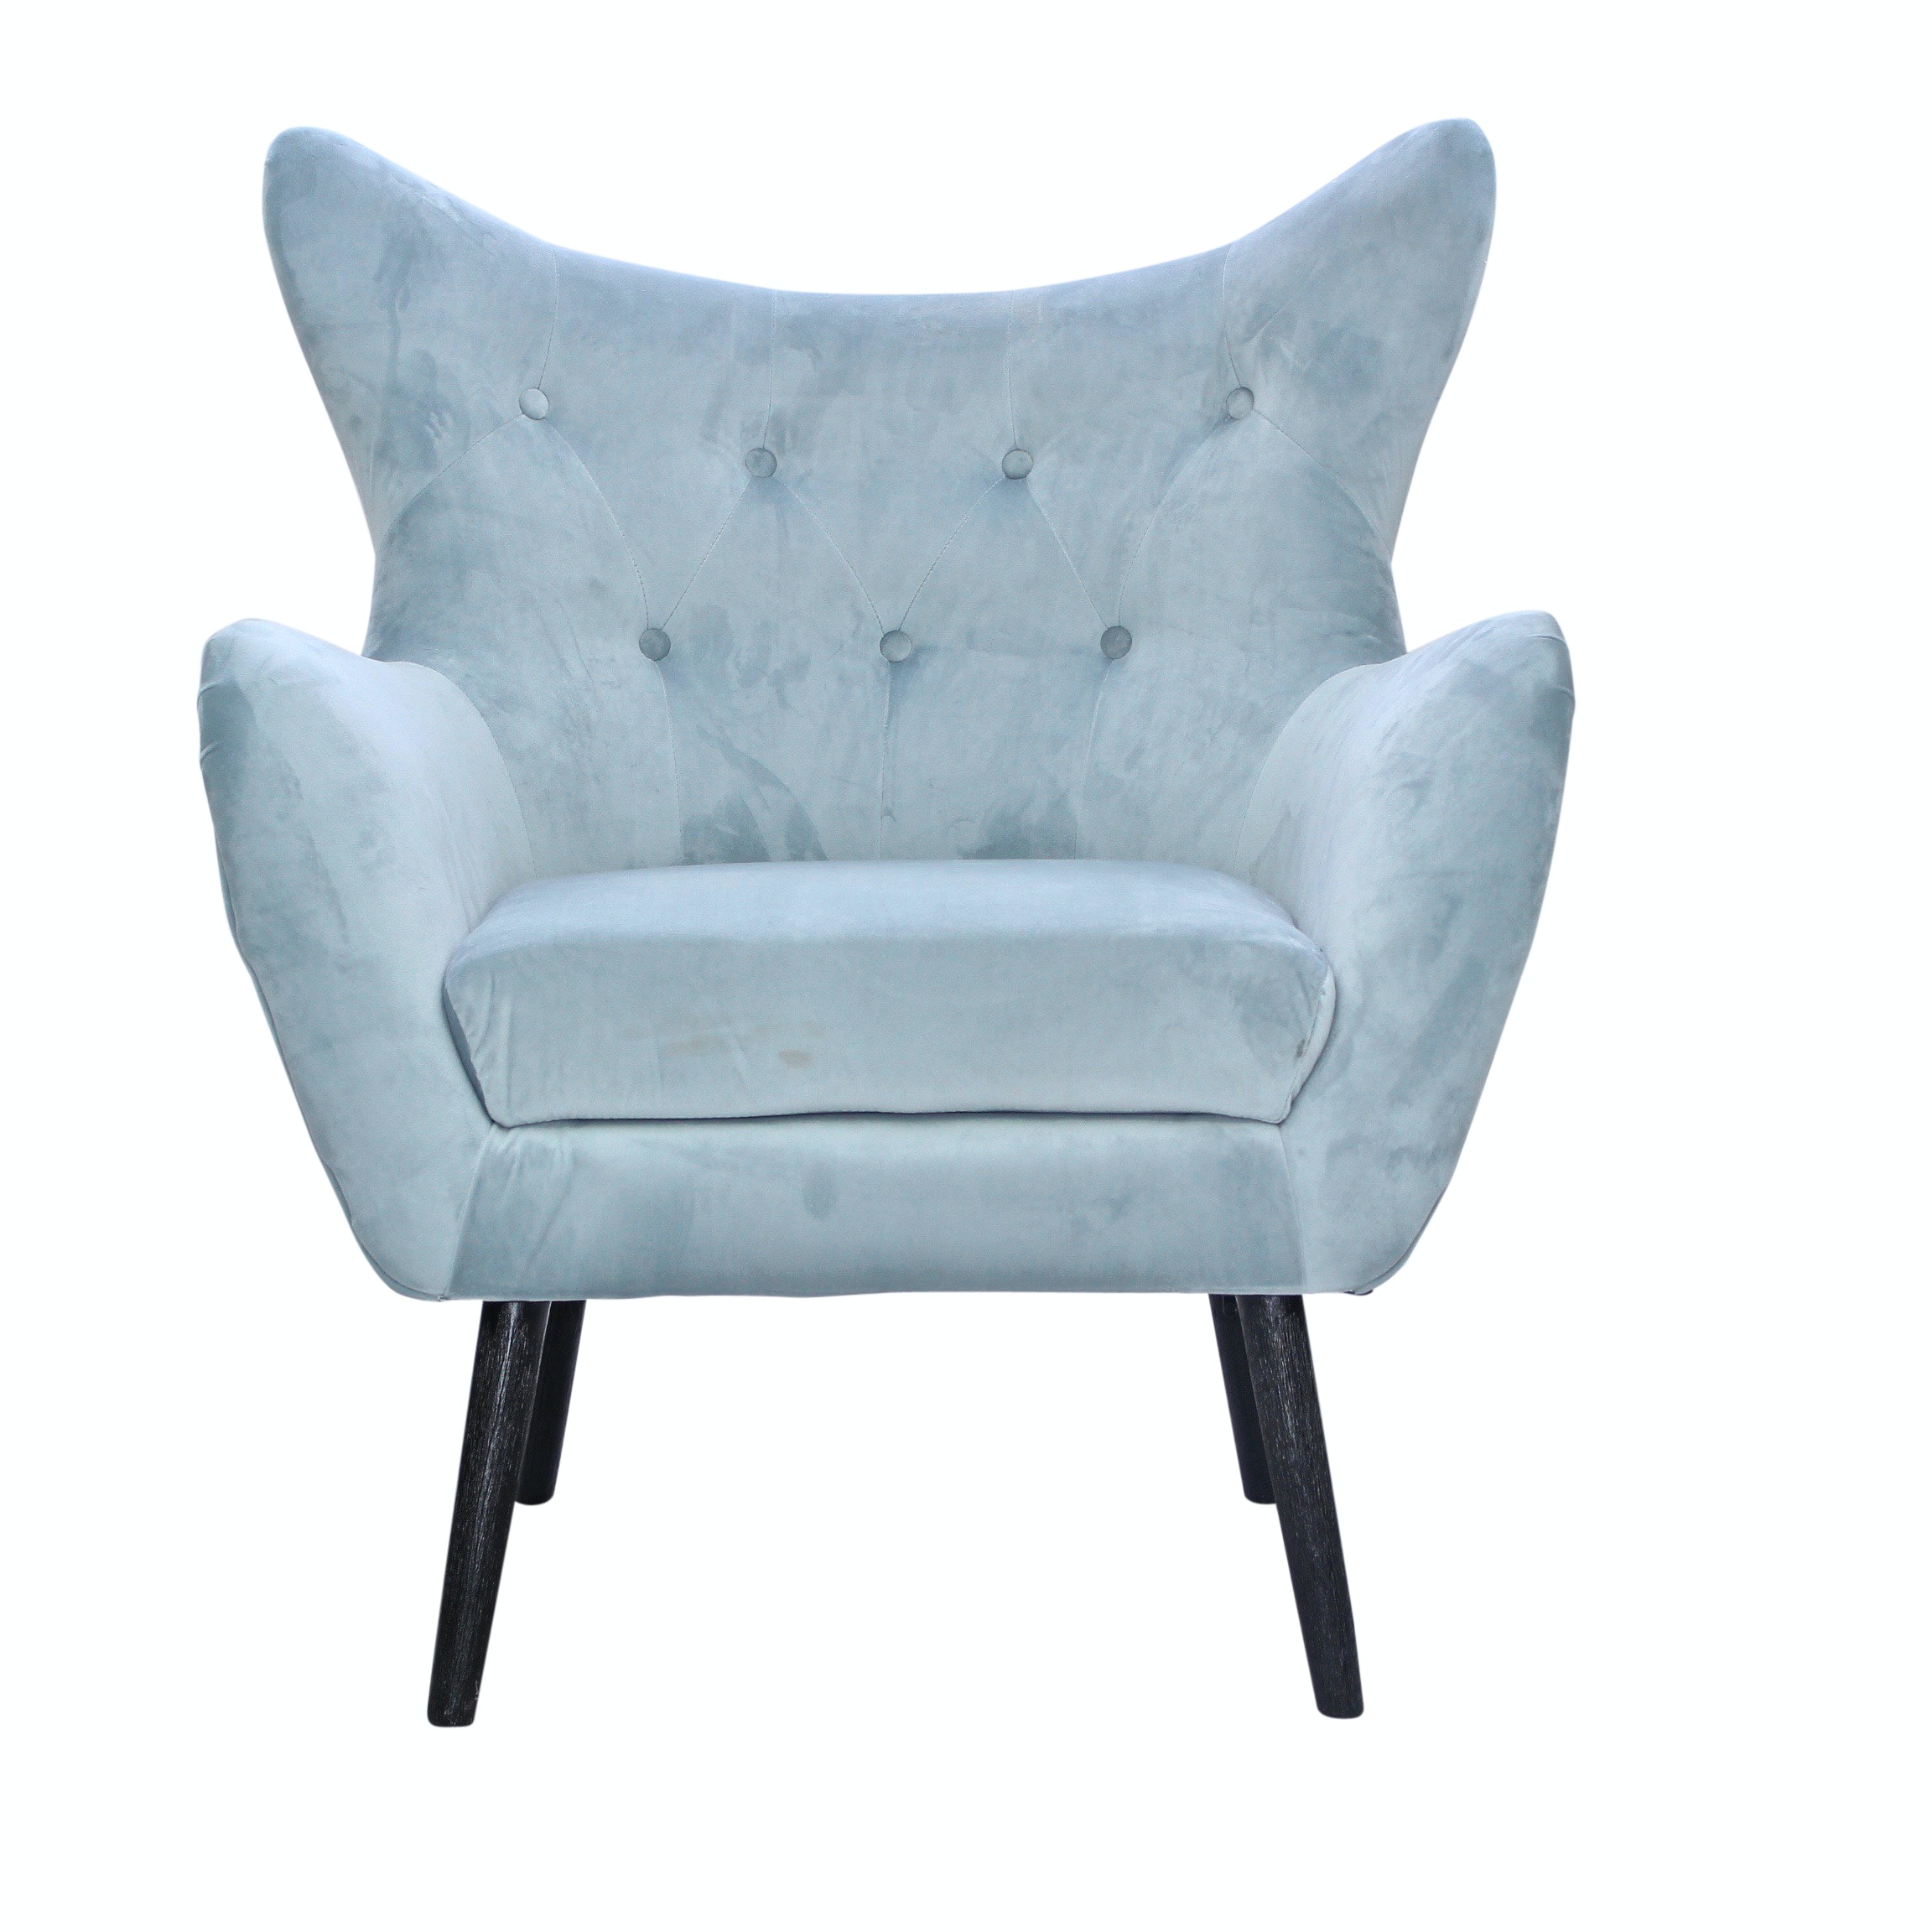 Noble House Home Tufted Light Blue Wing Back Arm Chair, Contemporary